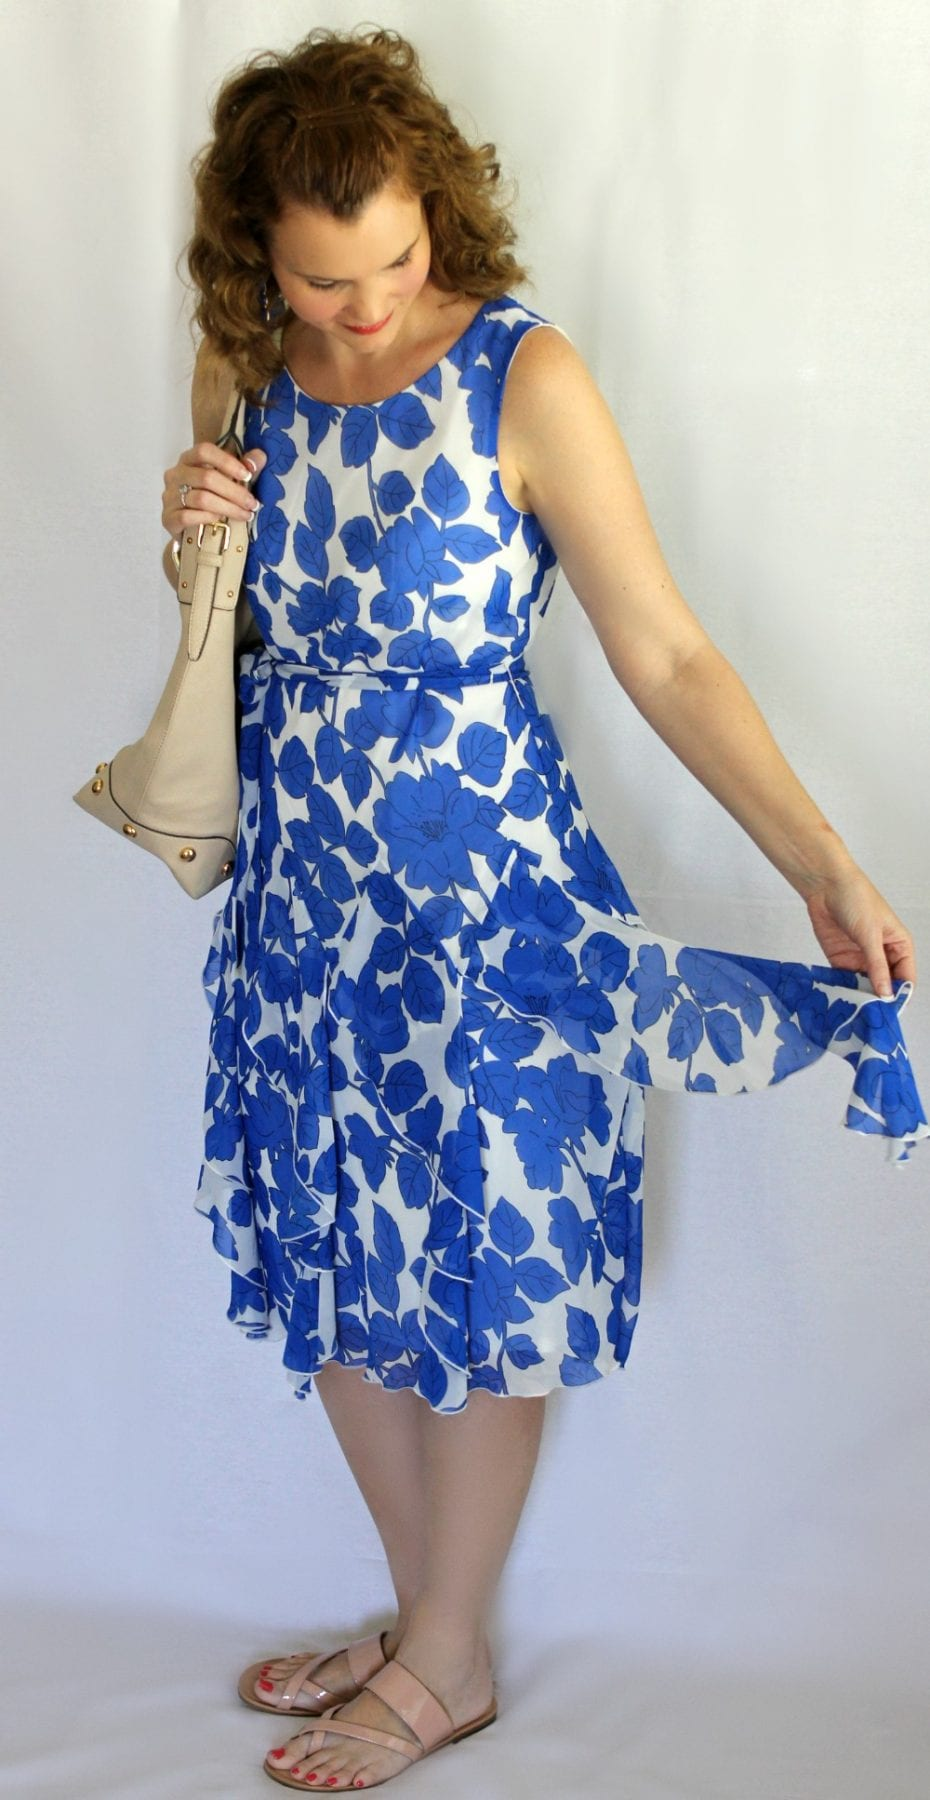 Summer Dress: Royal Blue Floral Print Corkscrew Dress from Chadwicks.